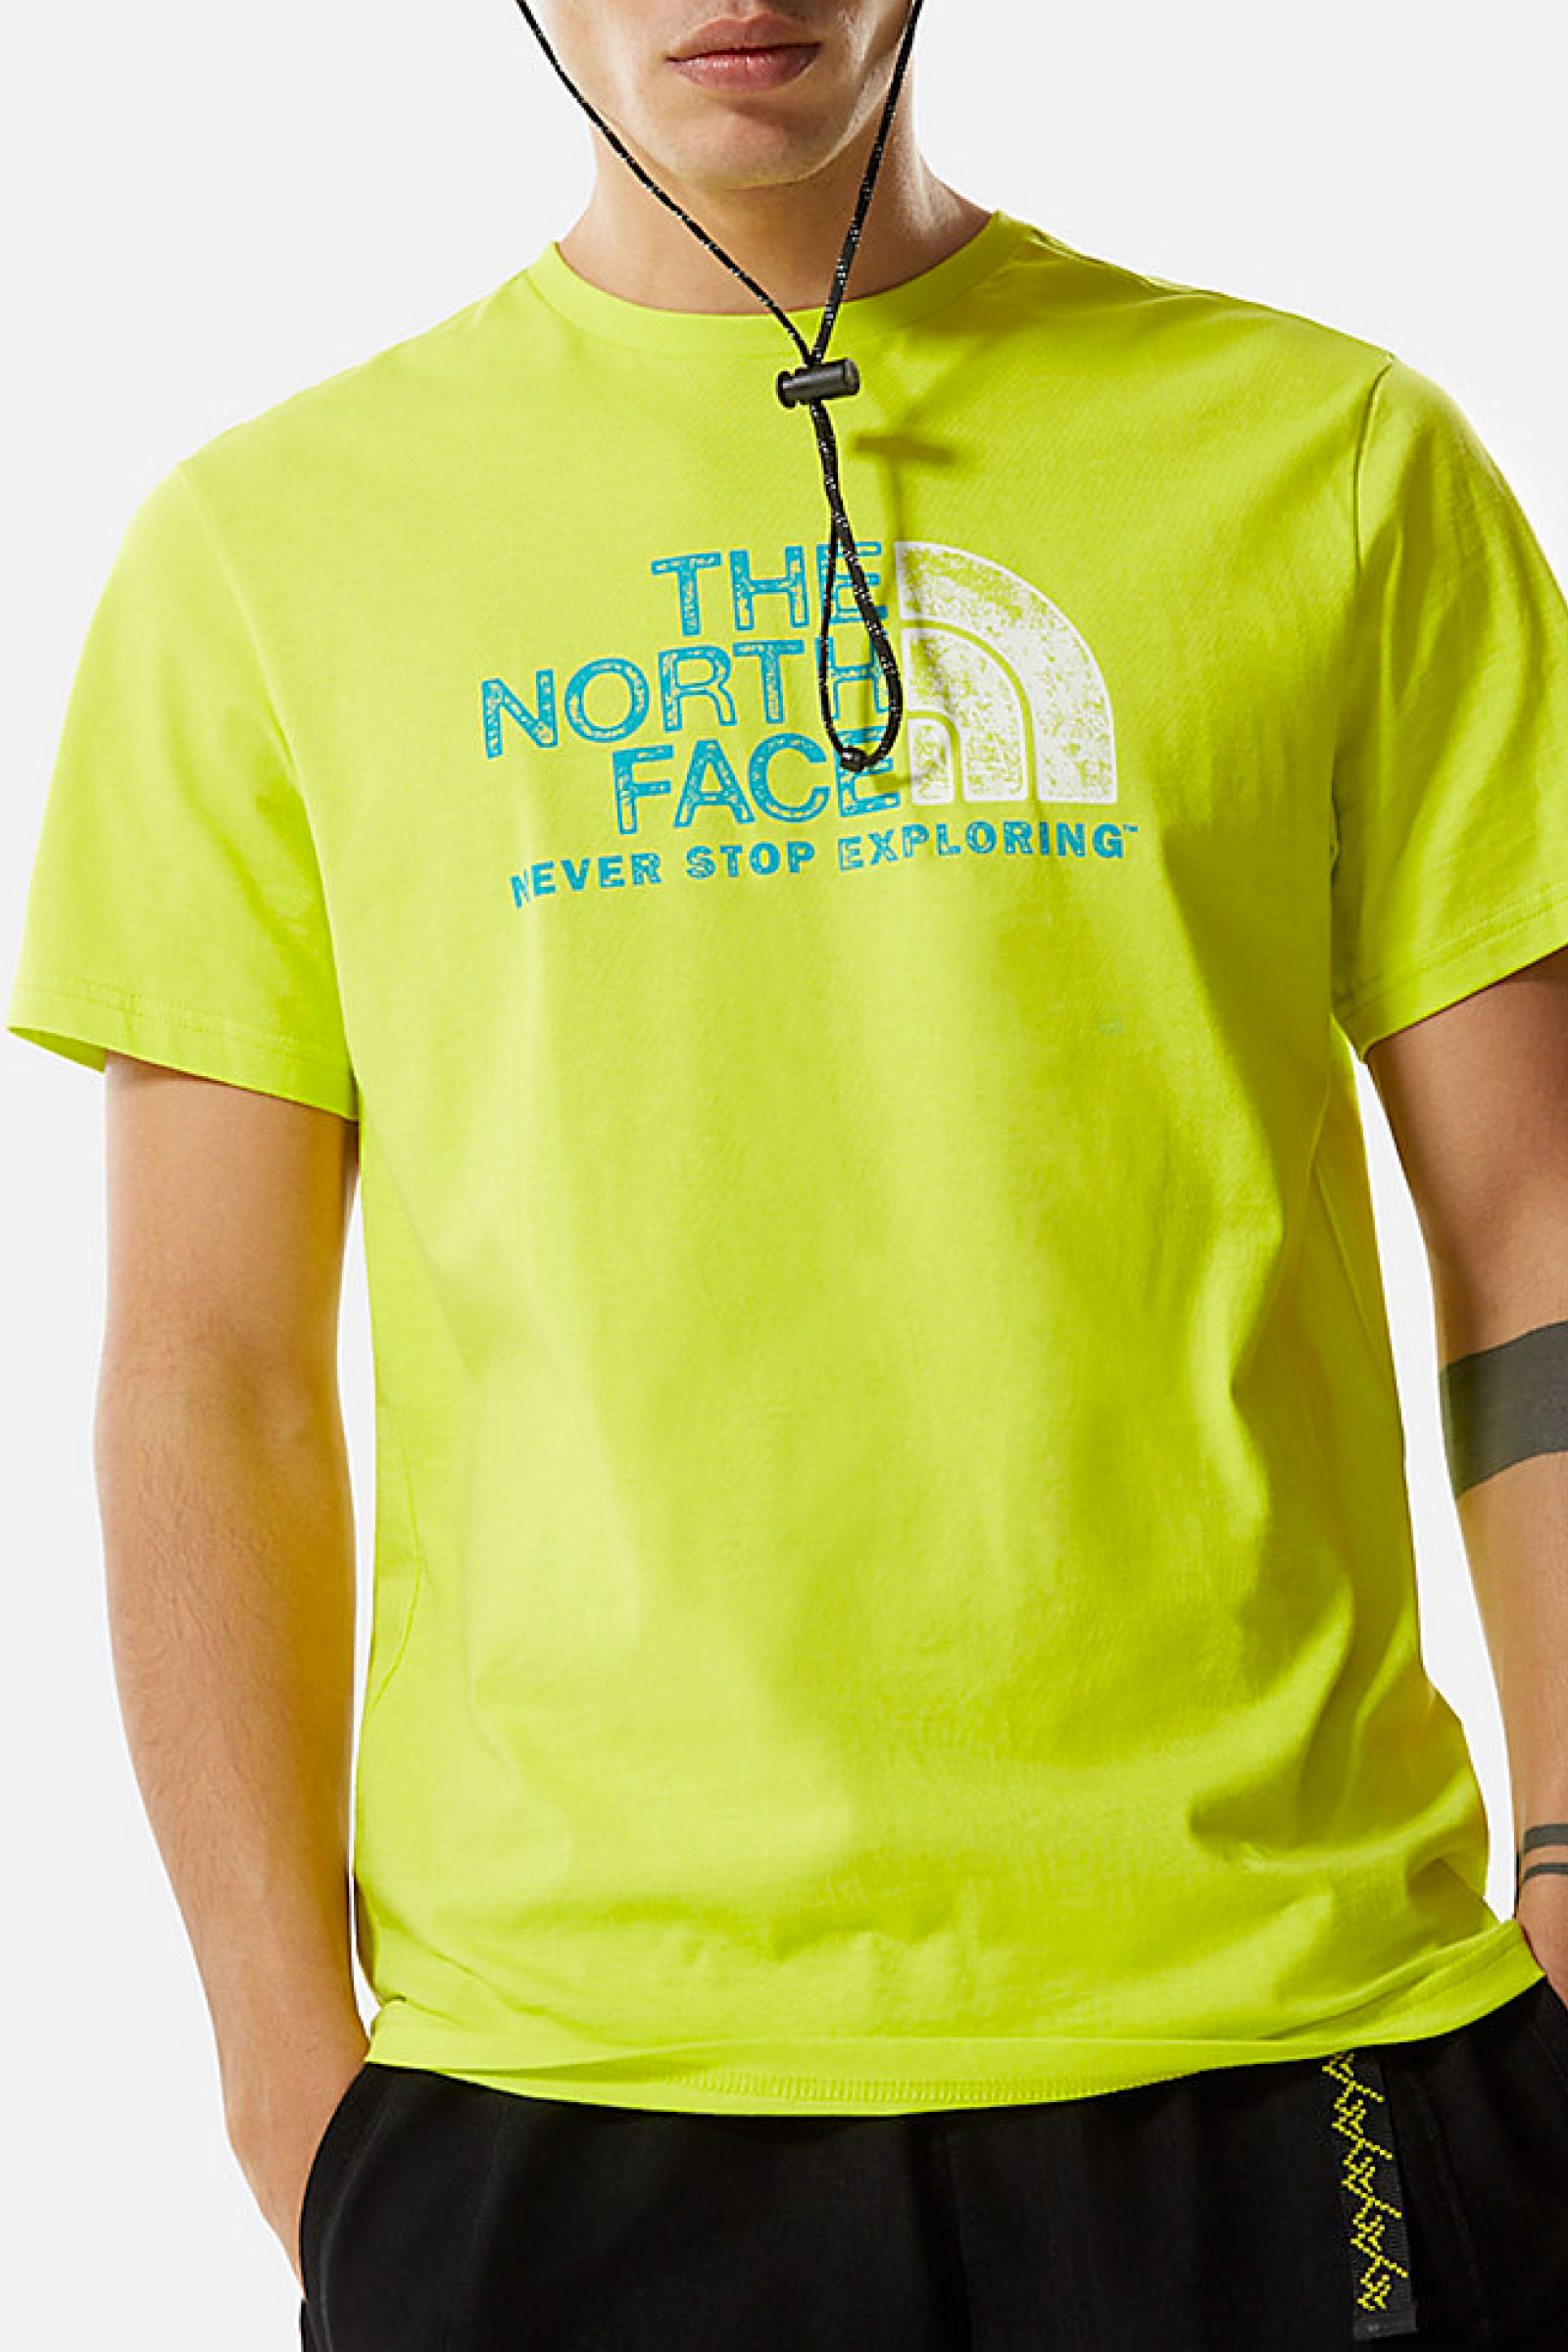 THE NORTH FACE T-Shirt Uomo THE NORTH FACE | T-Shirt | NF0A4M68JE31